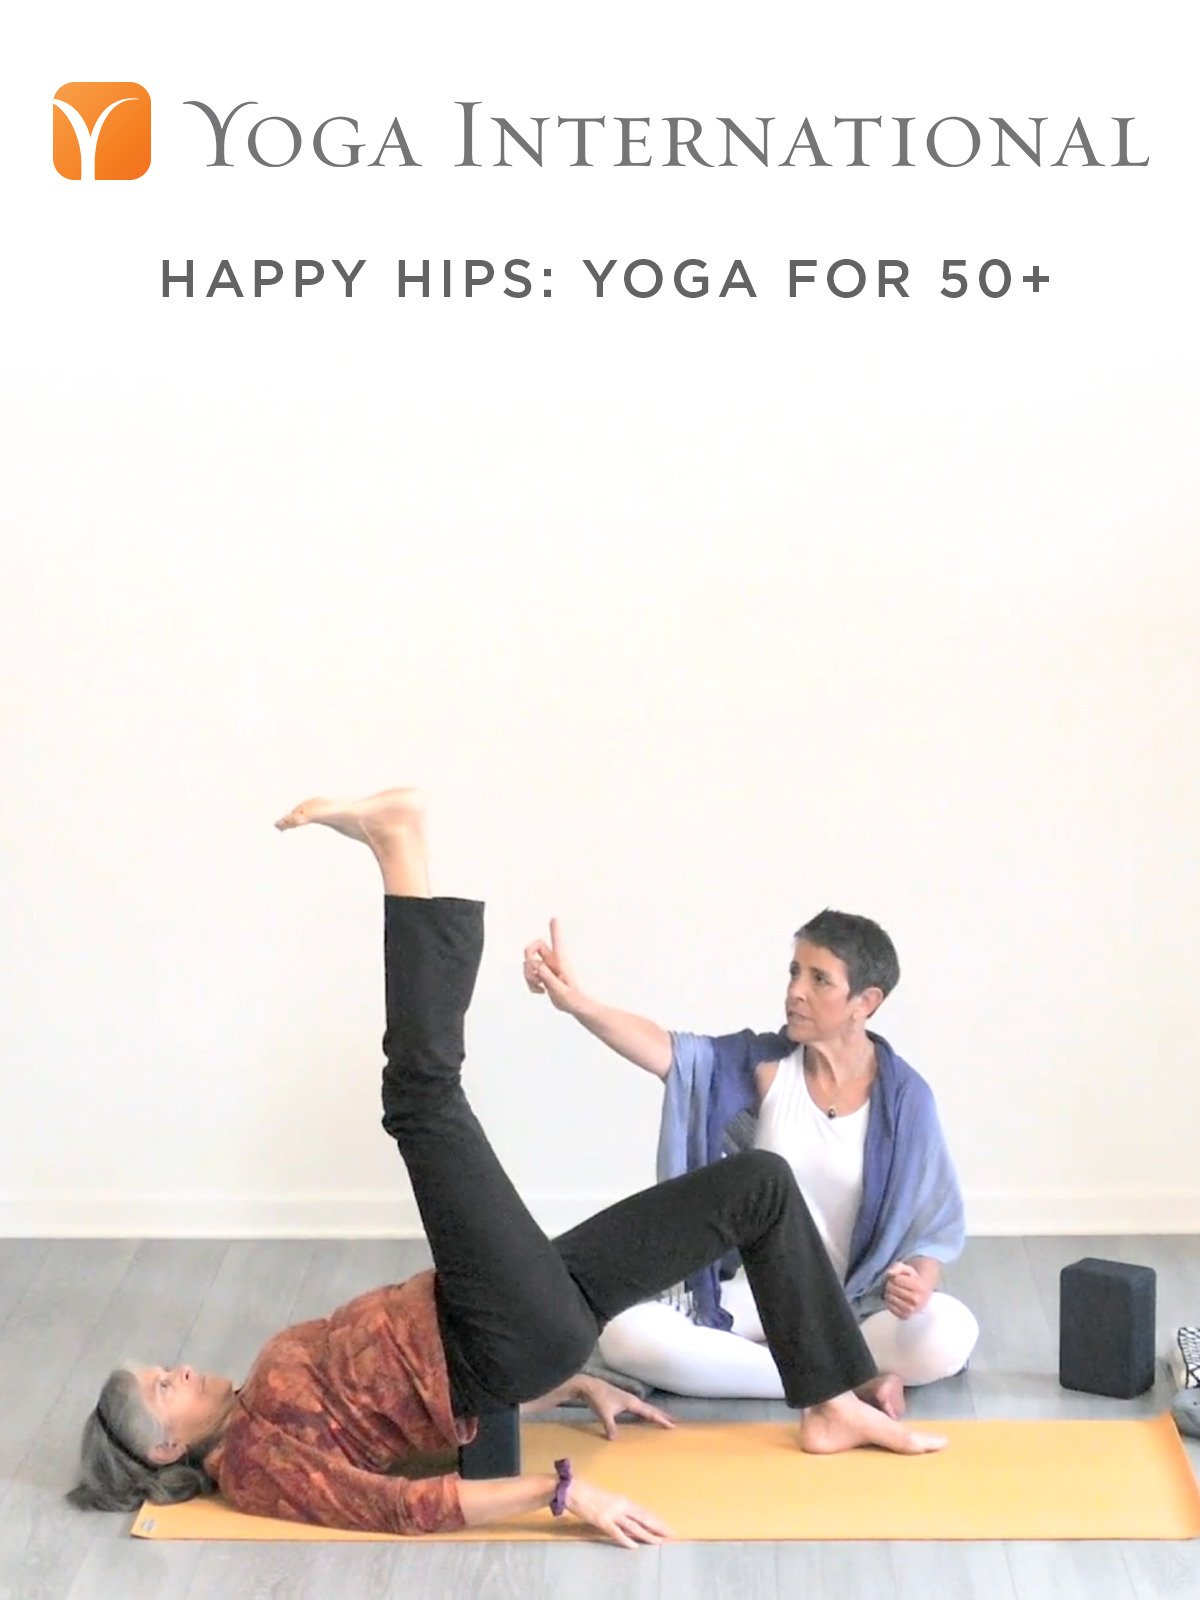 Happy Hips: Yoga for 50+